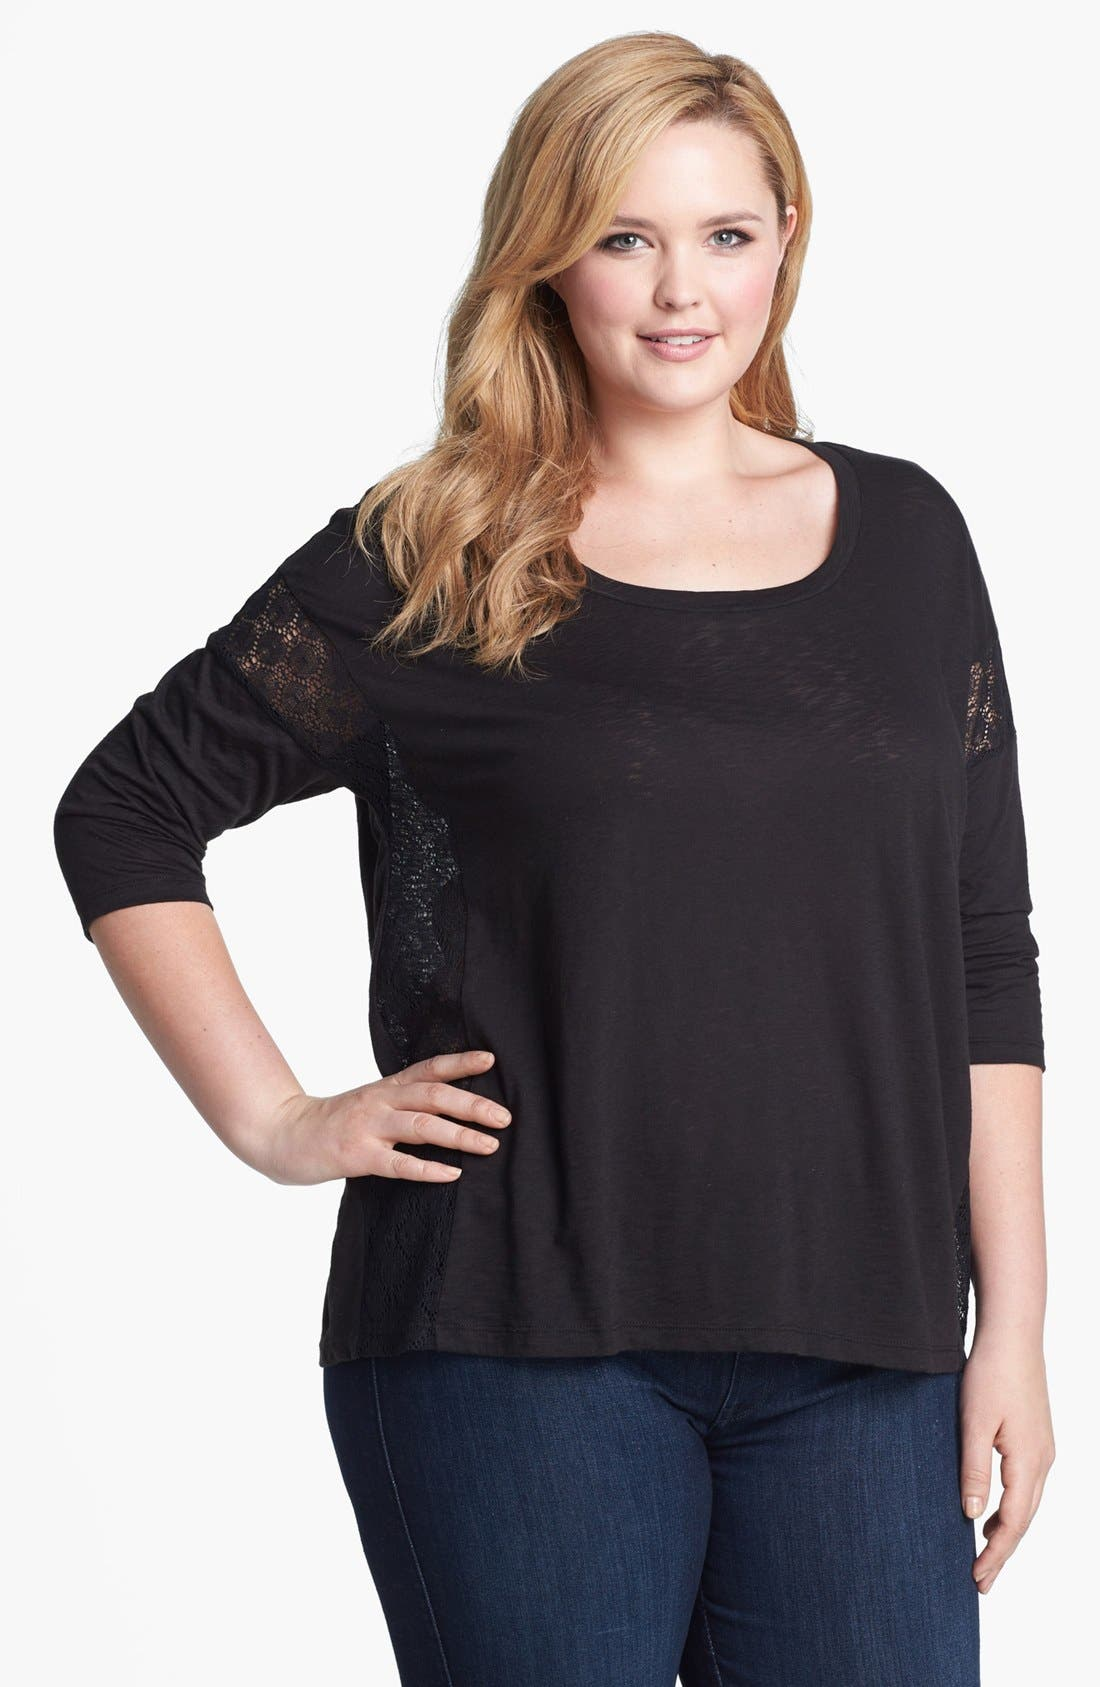 Main Image - Splendid 'Chic' Cotton Tee (Plus Size)